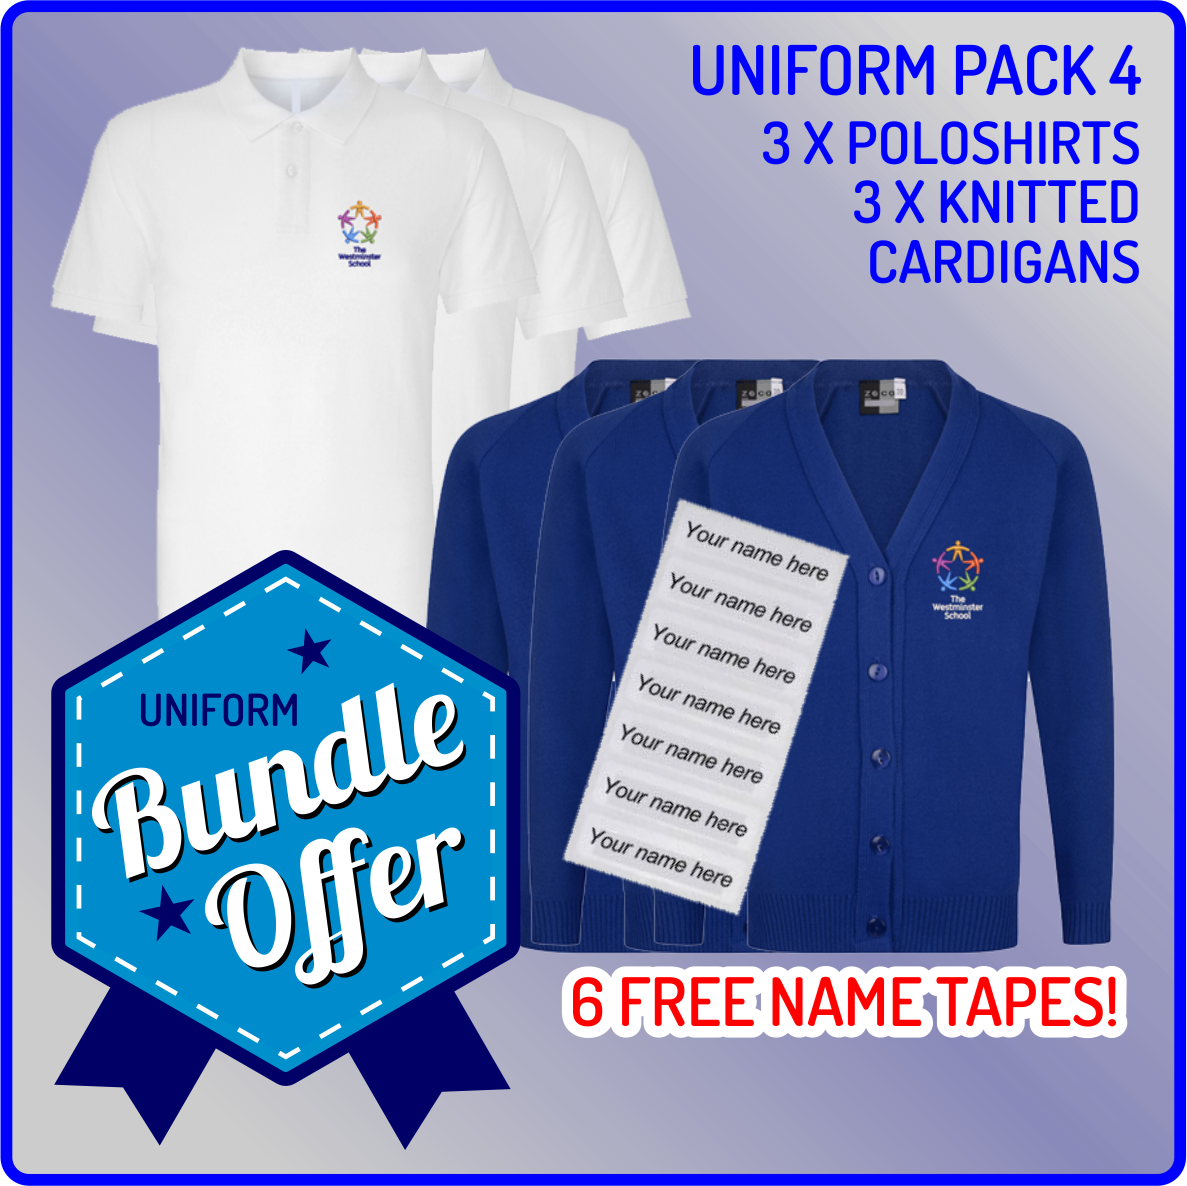 Bundle offer of 3 Knitted Cardigan & 3 Poloshirts - includes FREE name tapes!